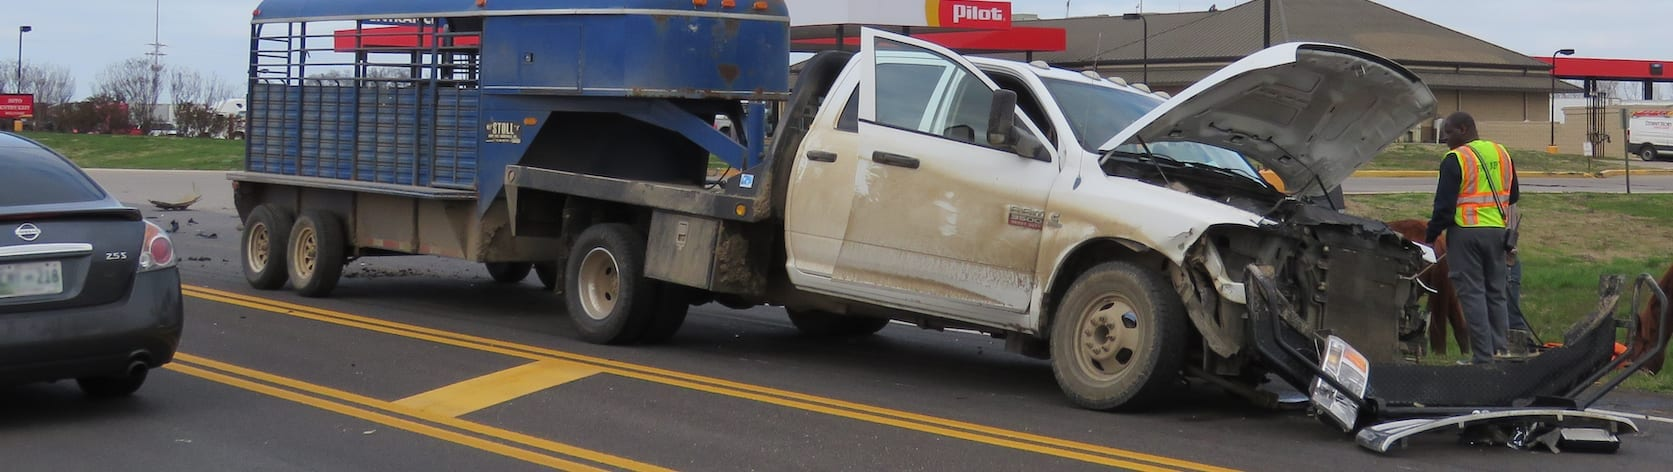 st charles truck accident lawyer; st charles truck accident law firm; st charles truck accident lawsuit